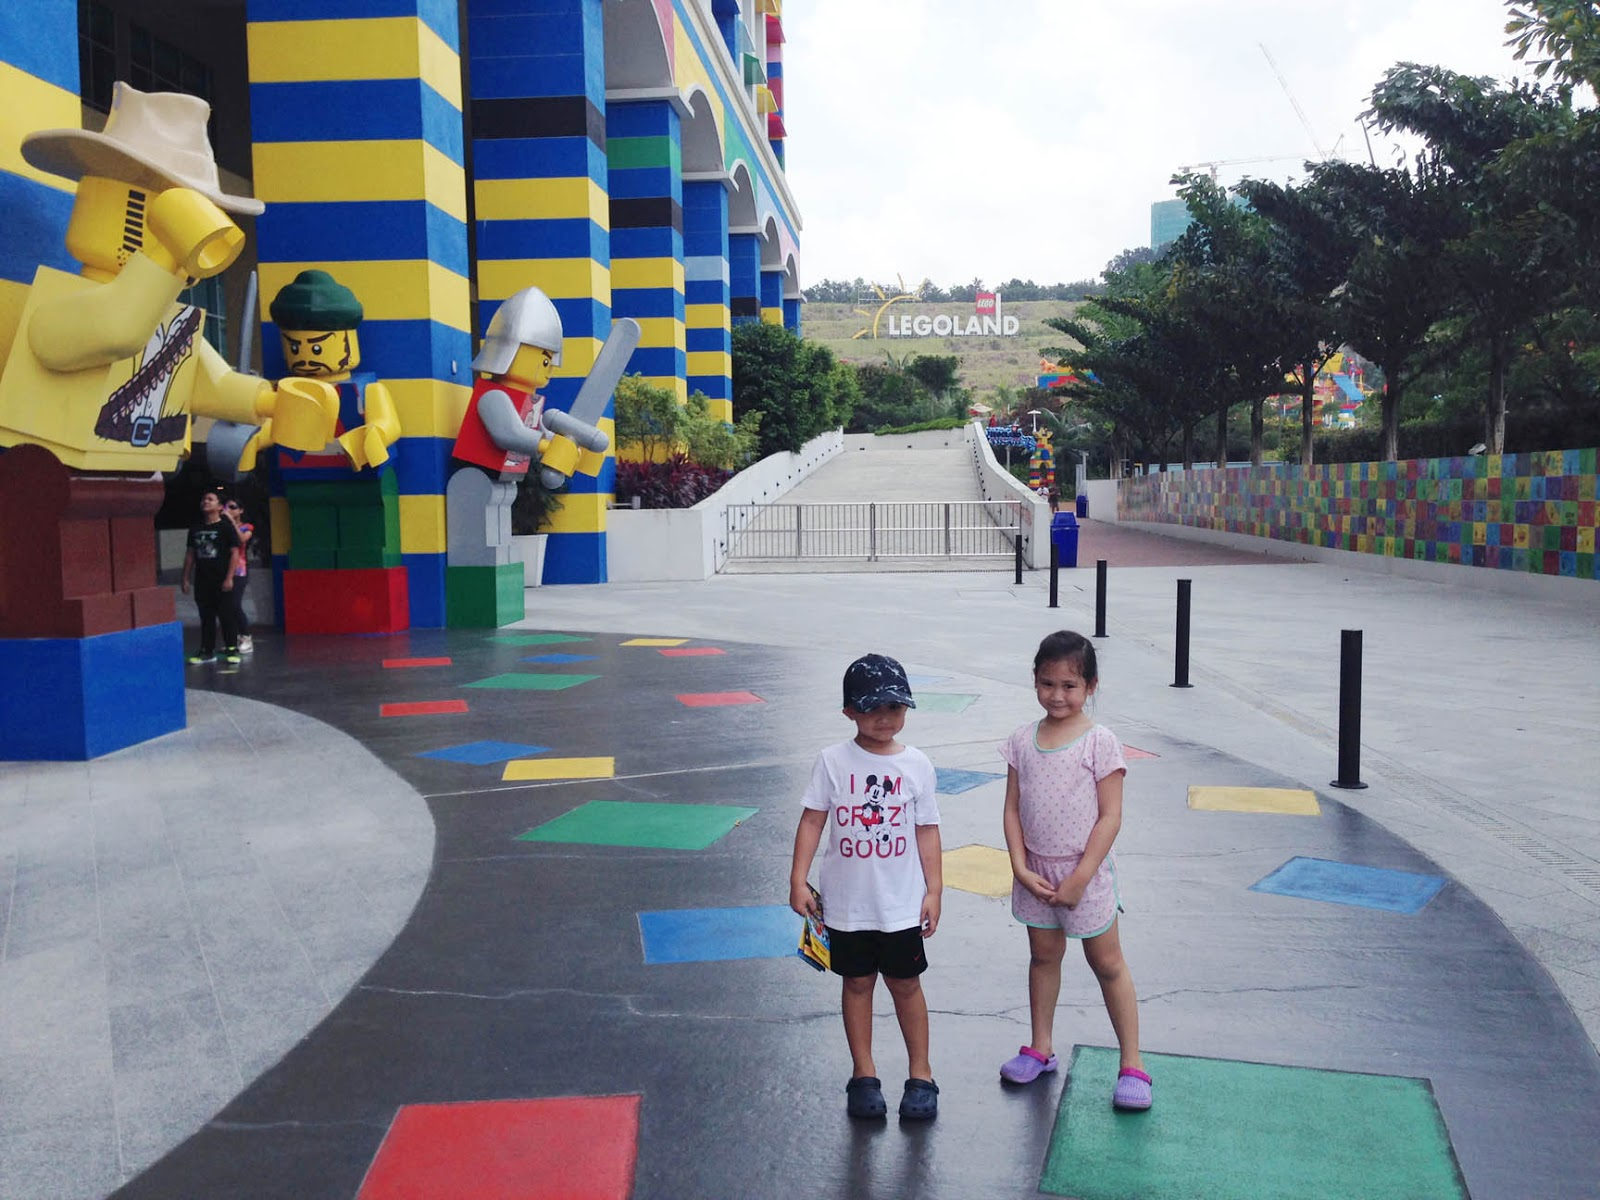 f44a9e0f786 MrsMommyHolic  LEGOLAND MALAYSIA RESORT (part 1)  Getting there from ...